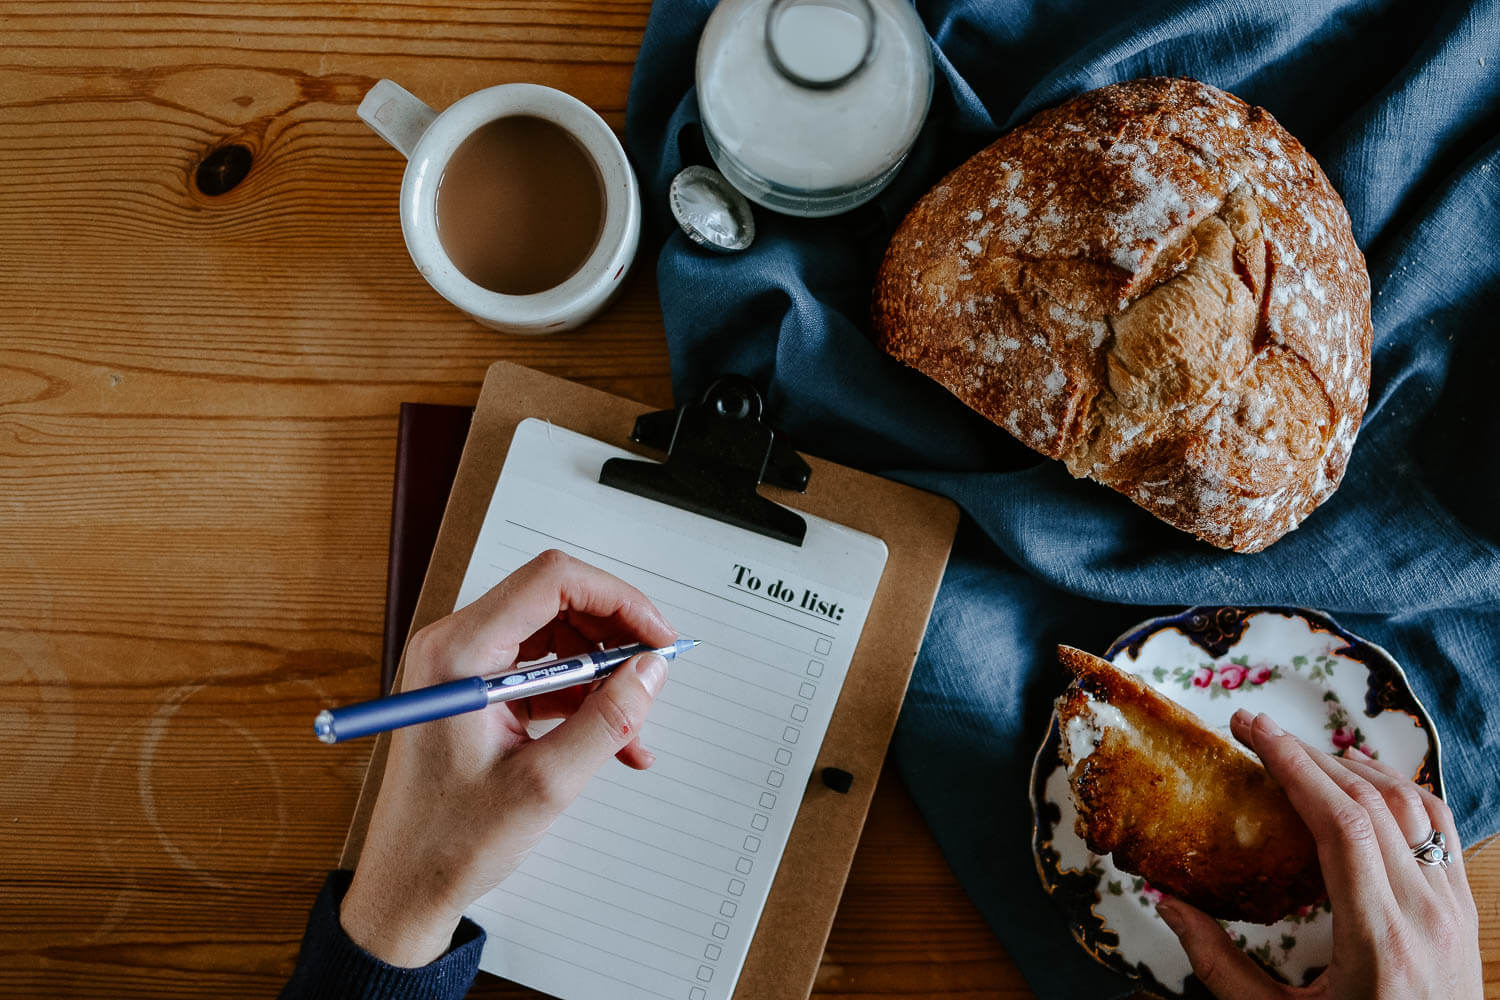 Writing a to-do list at a breakfast table with sourdough and a cup of tea